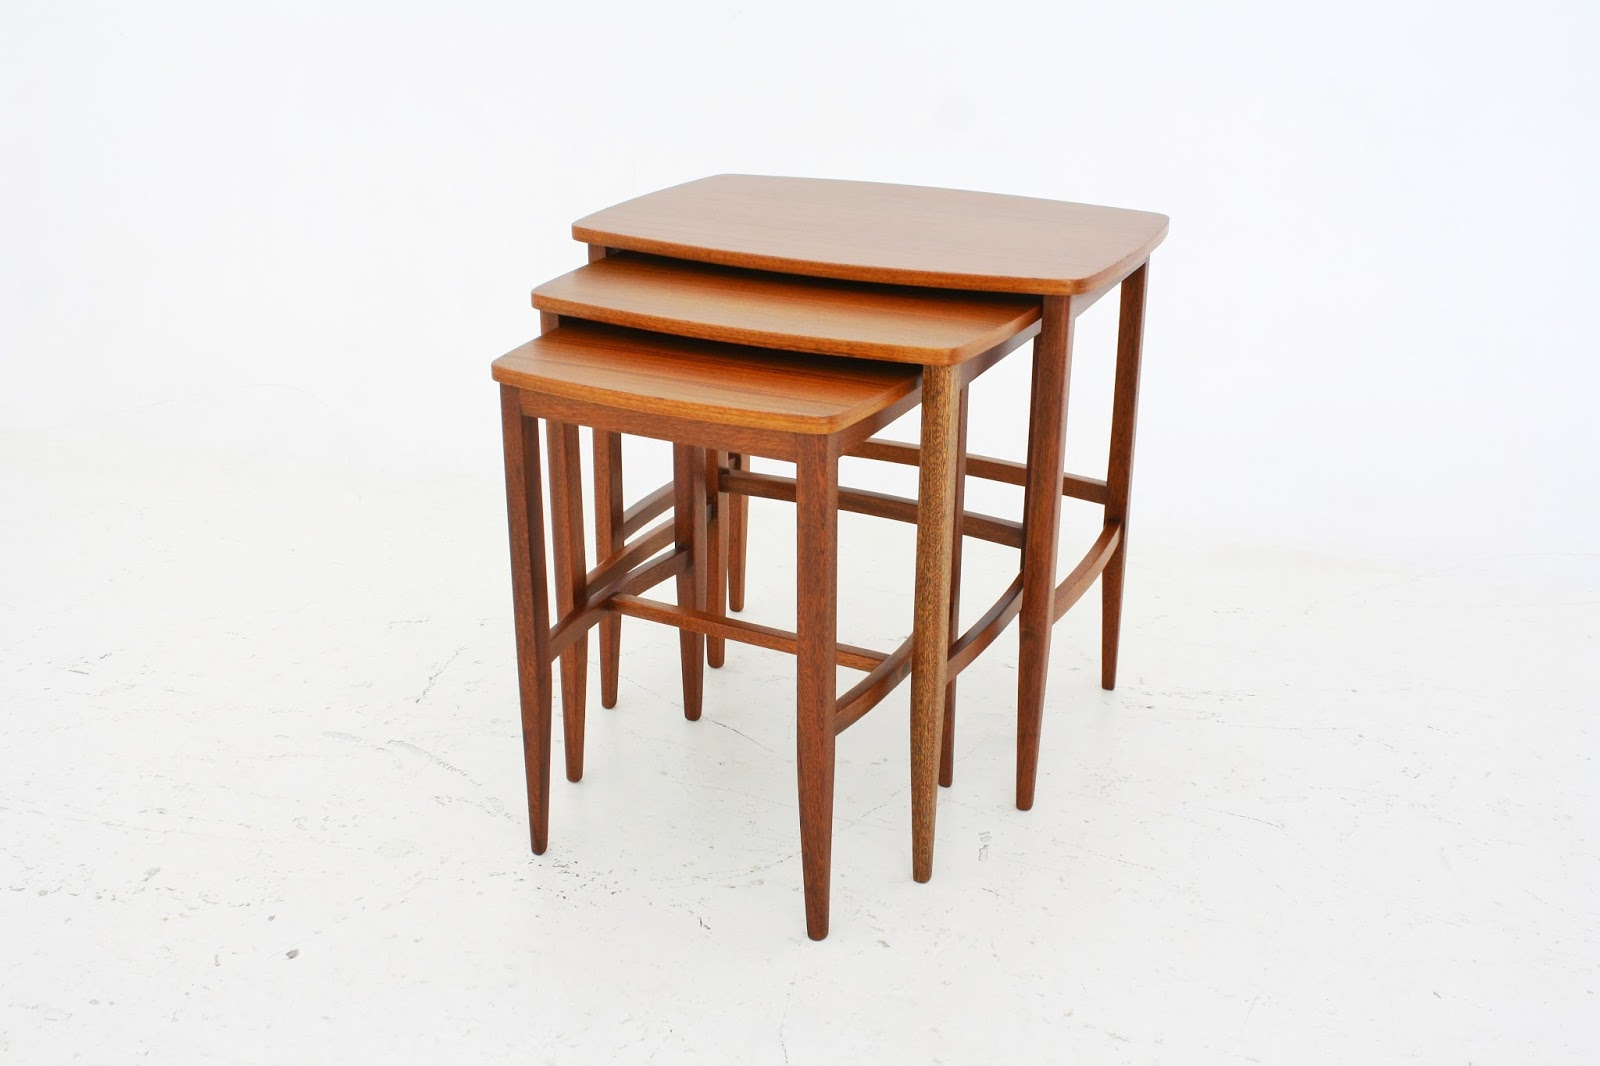 VAMP FURNITURE: A mid-century nest of tables in Sapele and